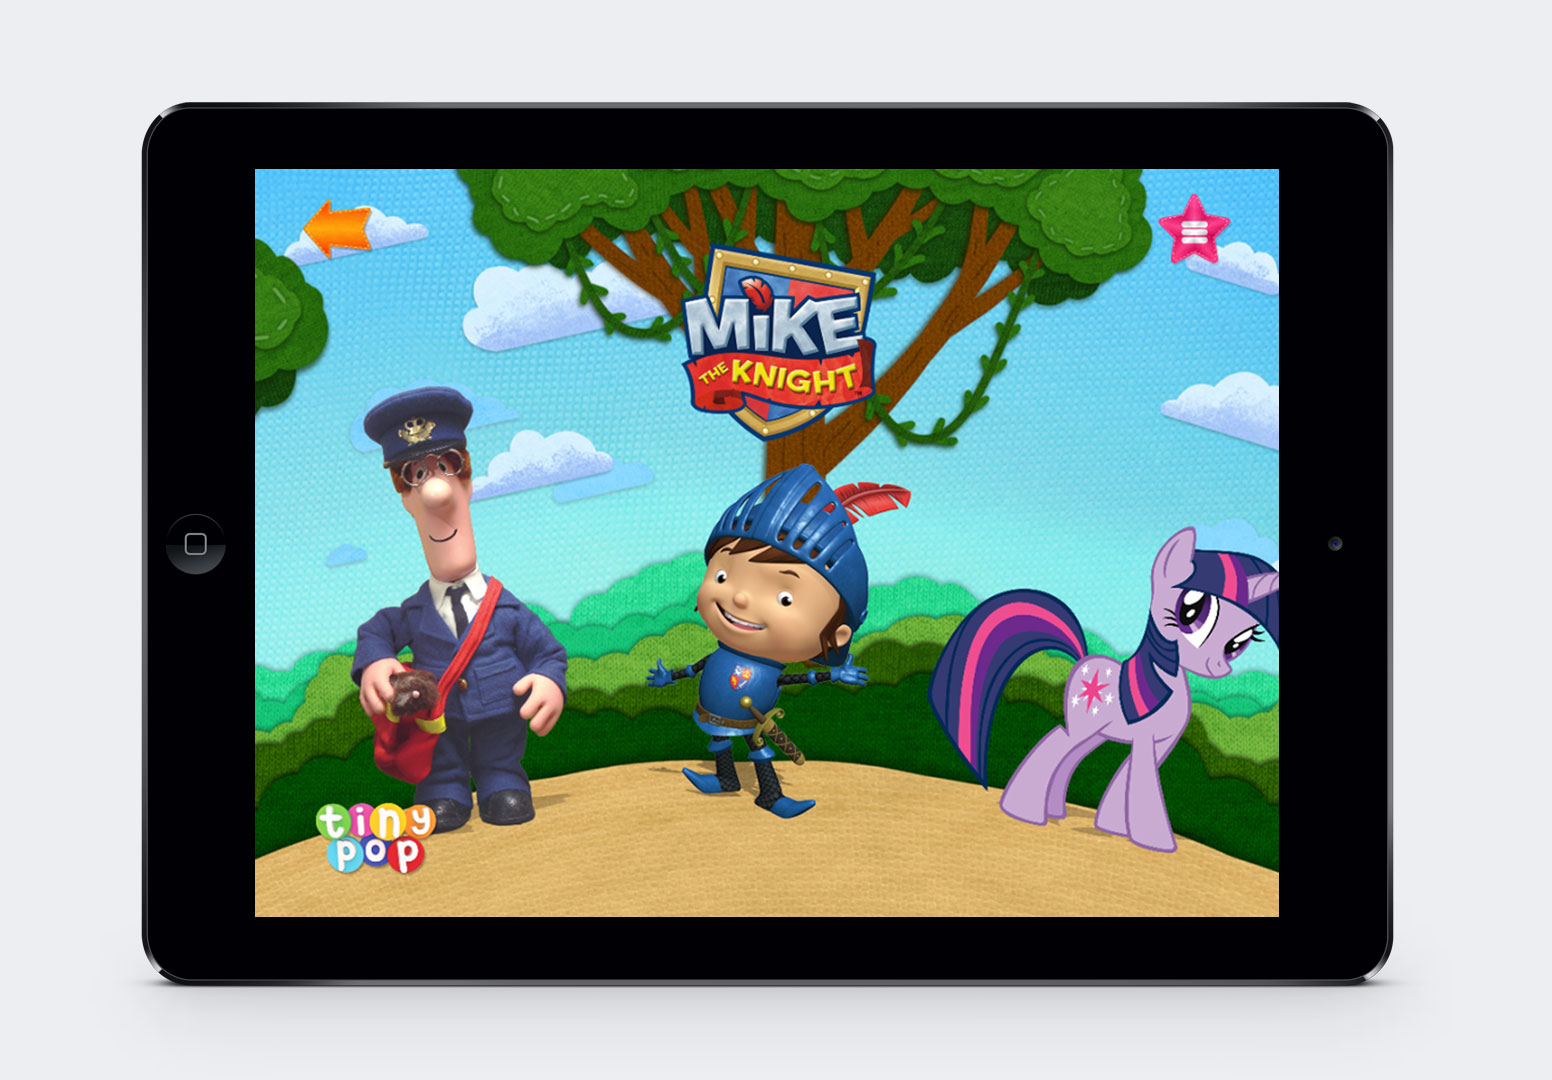 The Kids channel TINY POP (Freeview 126, Sky 617, Virgin 737, and Freesat 605) has announced the launch of a brand new content driven app available on iOS and Android. Free to download and free to play, it's available across tablet and mobile devices giving children and parents the chance to get closer to their favourite on-screen characters than ever before.